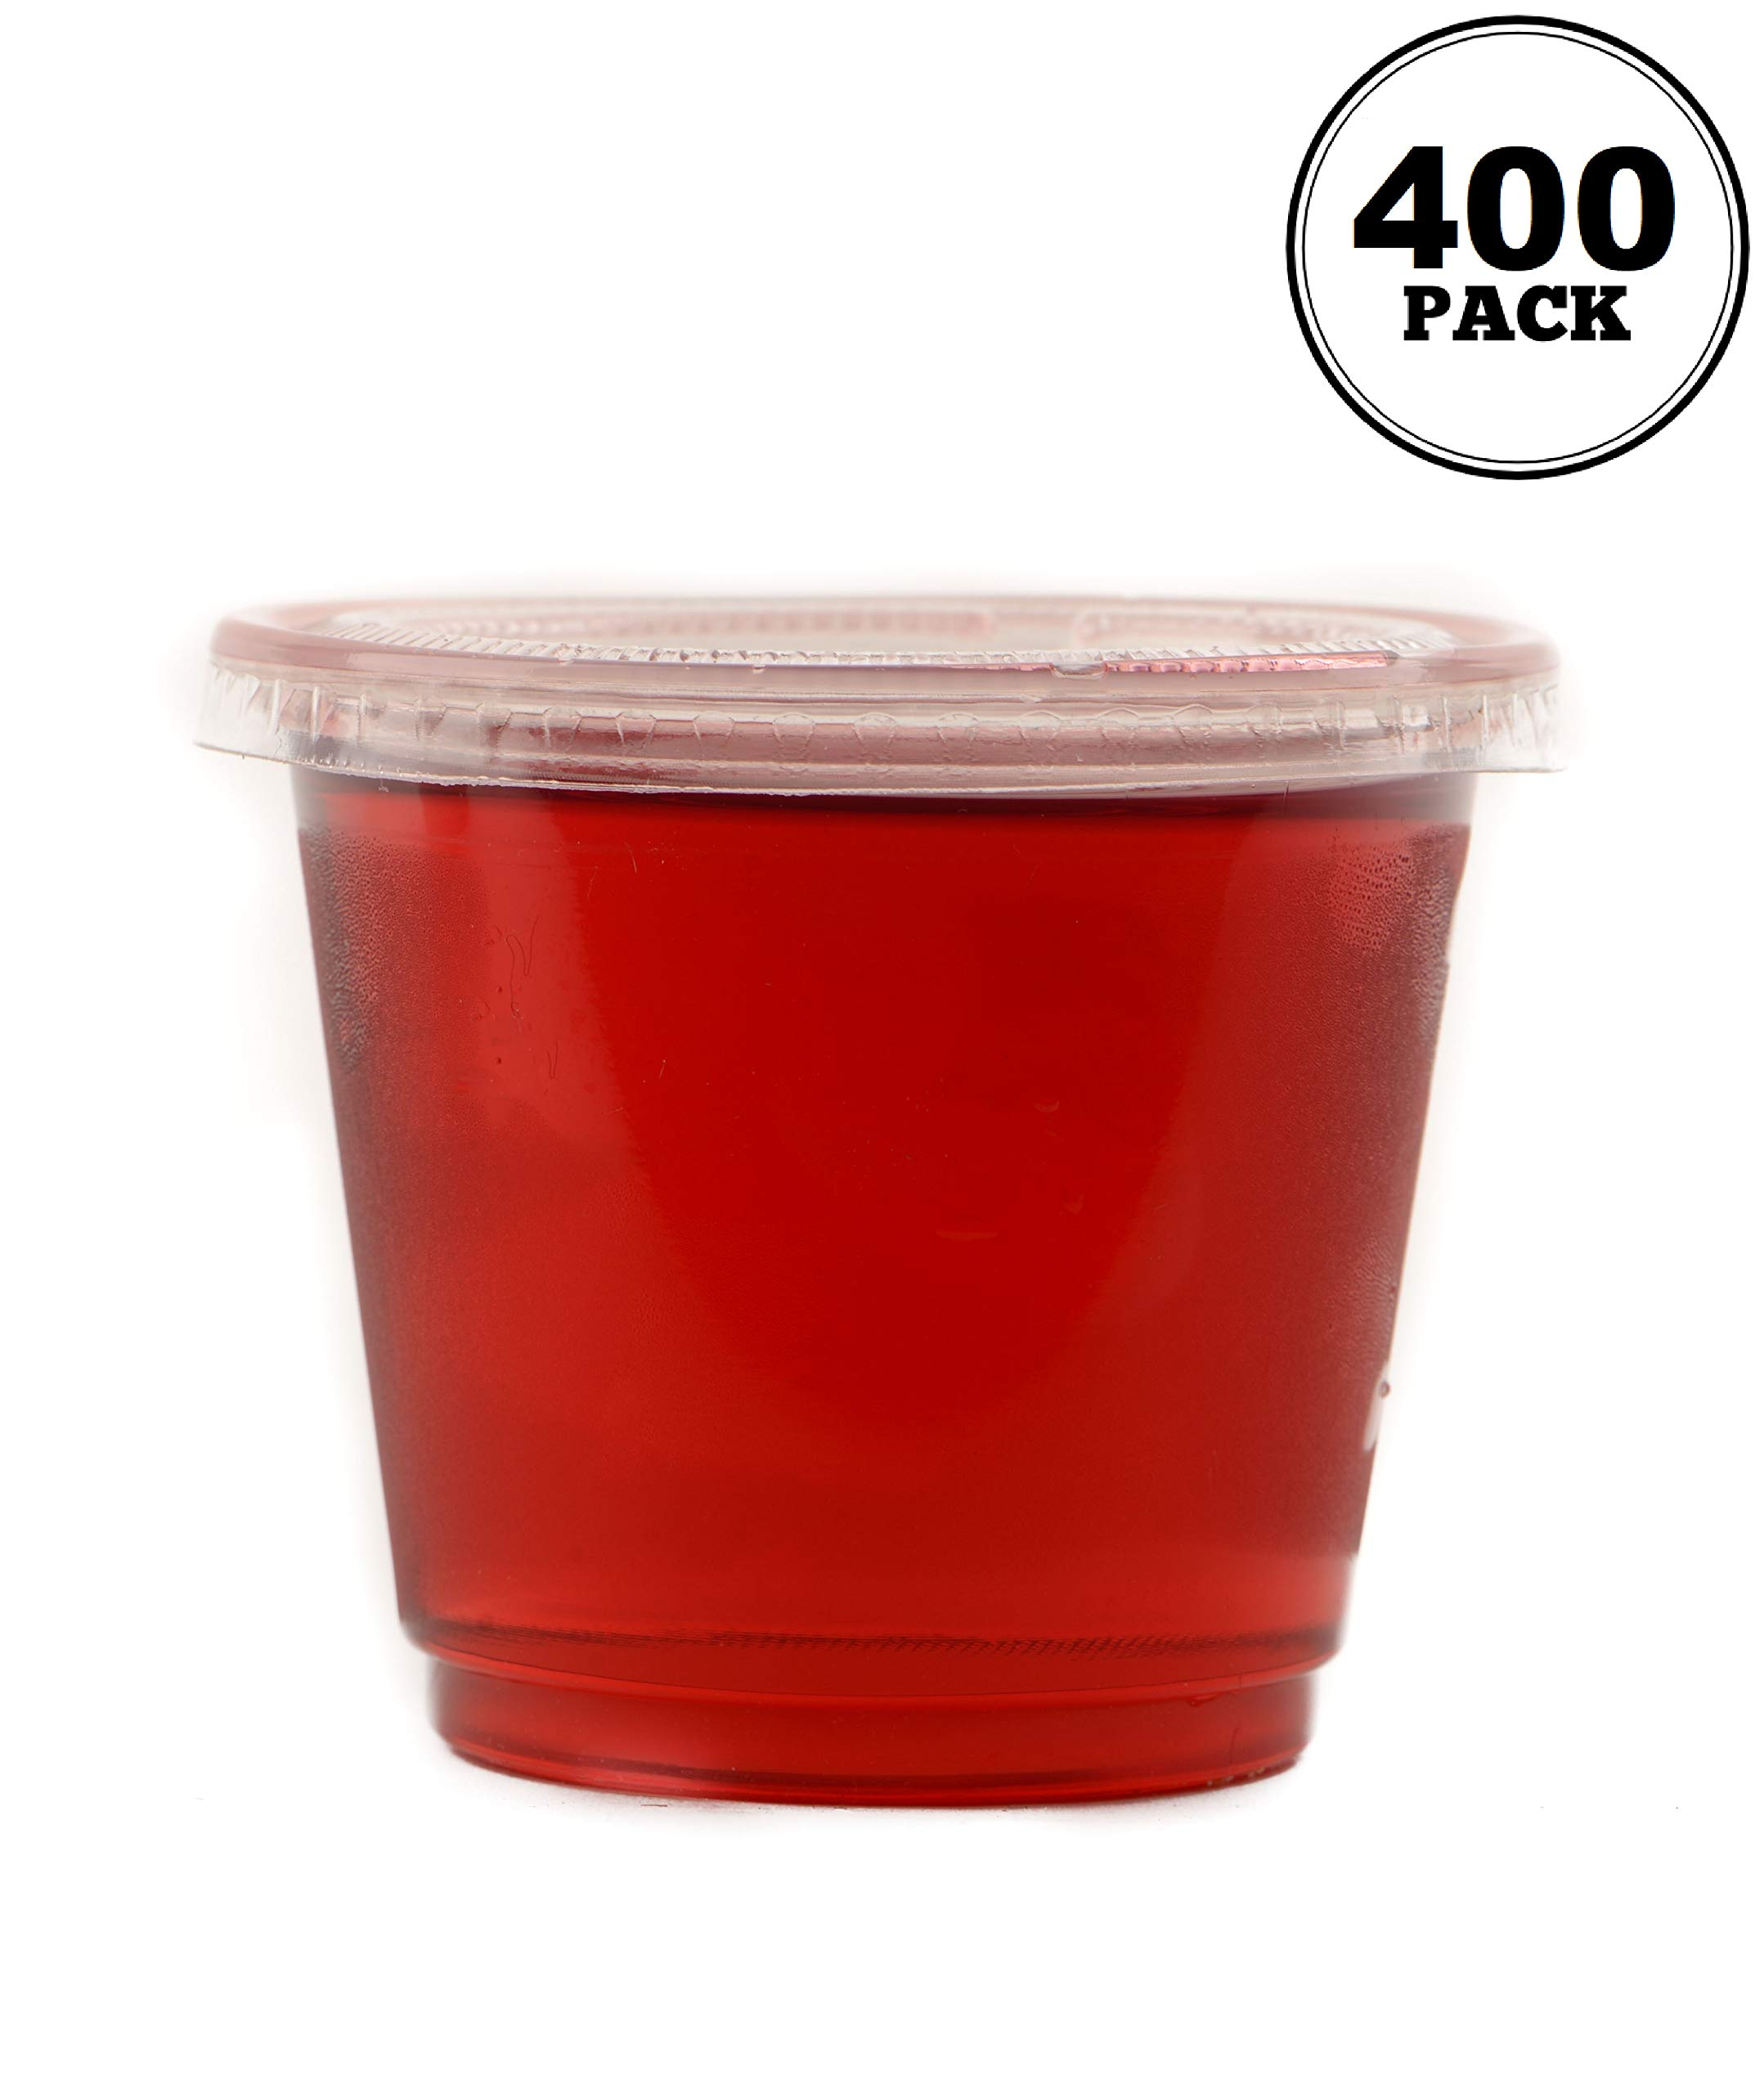 EcoQuality [400 Pack] 4 Oz Leak Proof Plastic Condiment Souffle Containers with Lids - Plastic Portion Cup with Plastic Lid Perfect for Sauces, Samples, Slime, Jello Shot, Food Storage & More! by EcoQuality